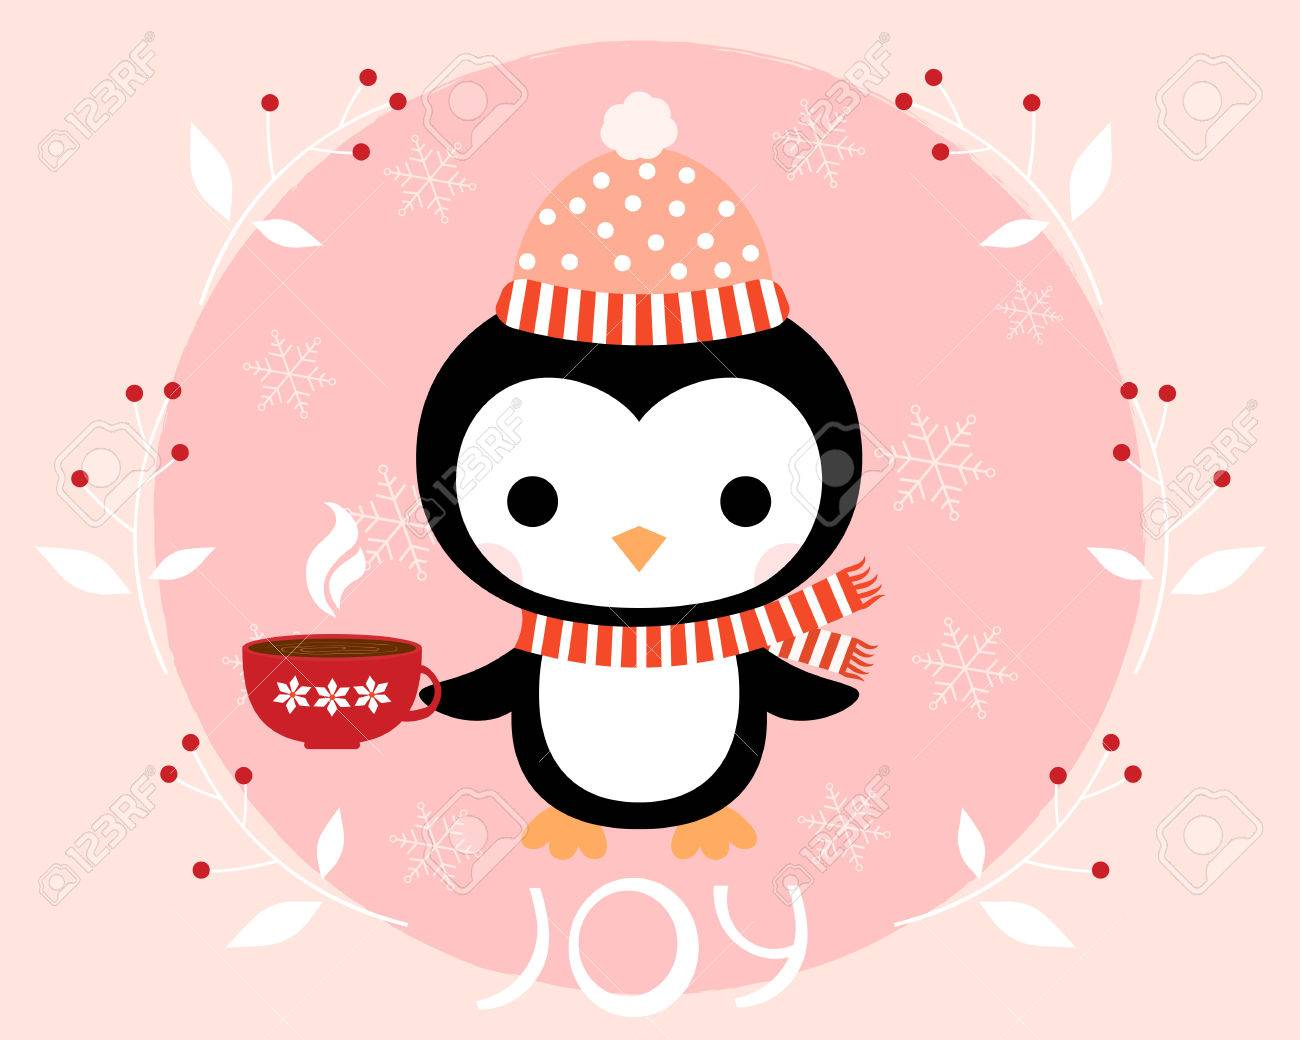 fb3527289f659d Cute winter penguin with a hat, a scarf and a cup of coffee. Christmas